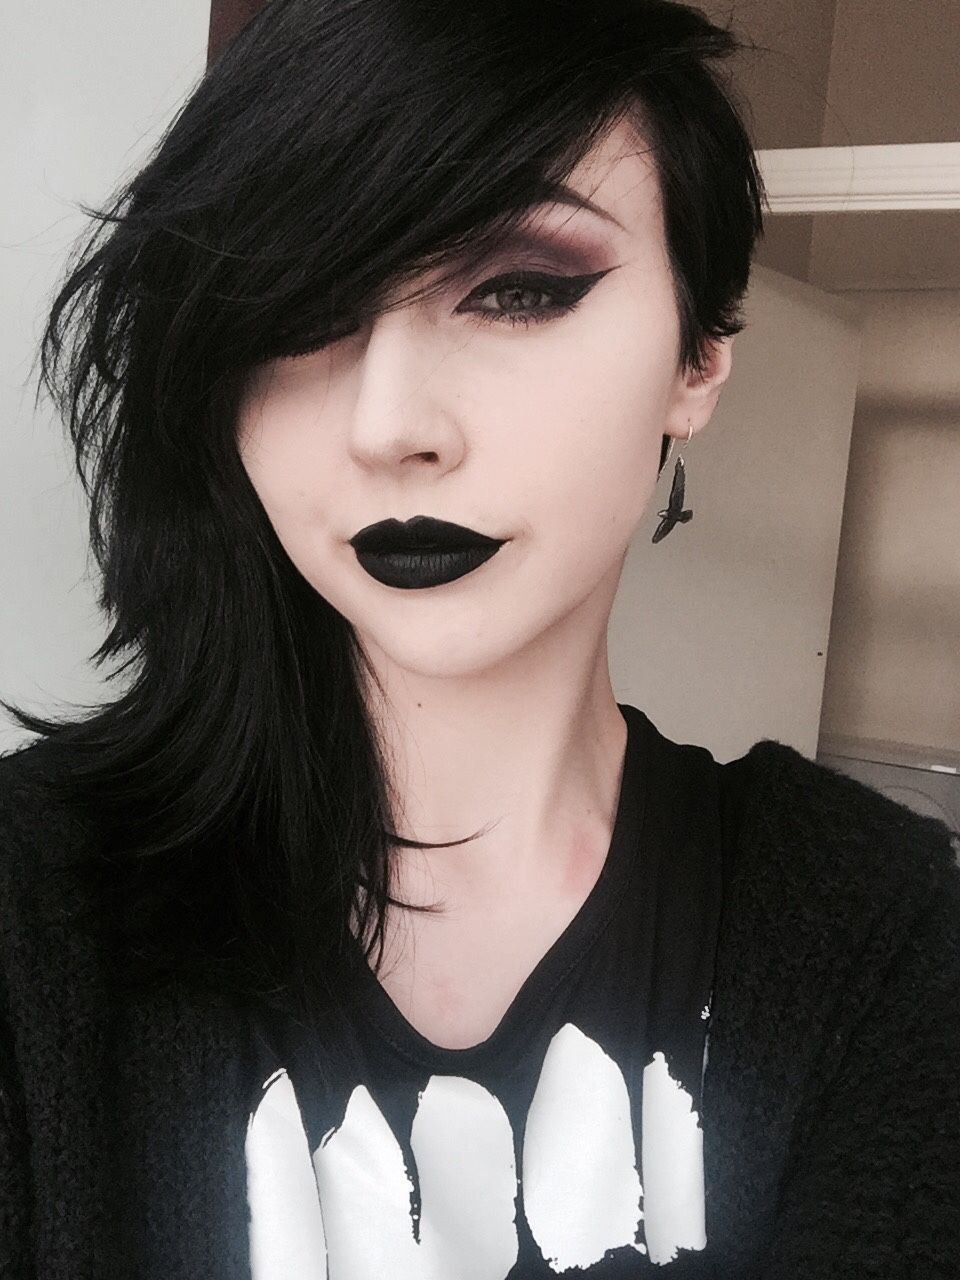 Persephone gothic pinterest persephone gothic and gothic beauty